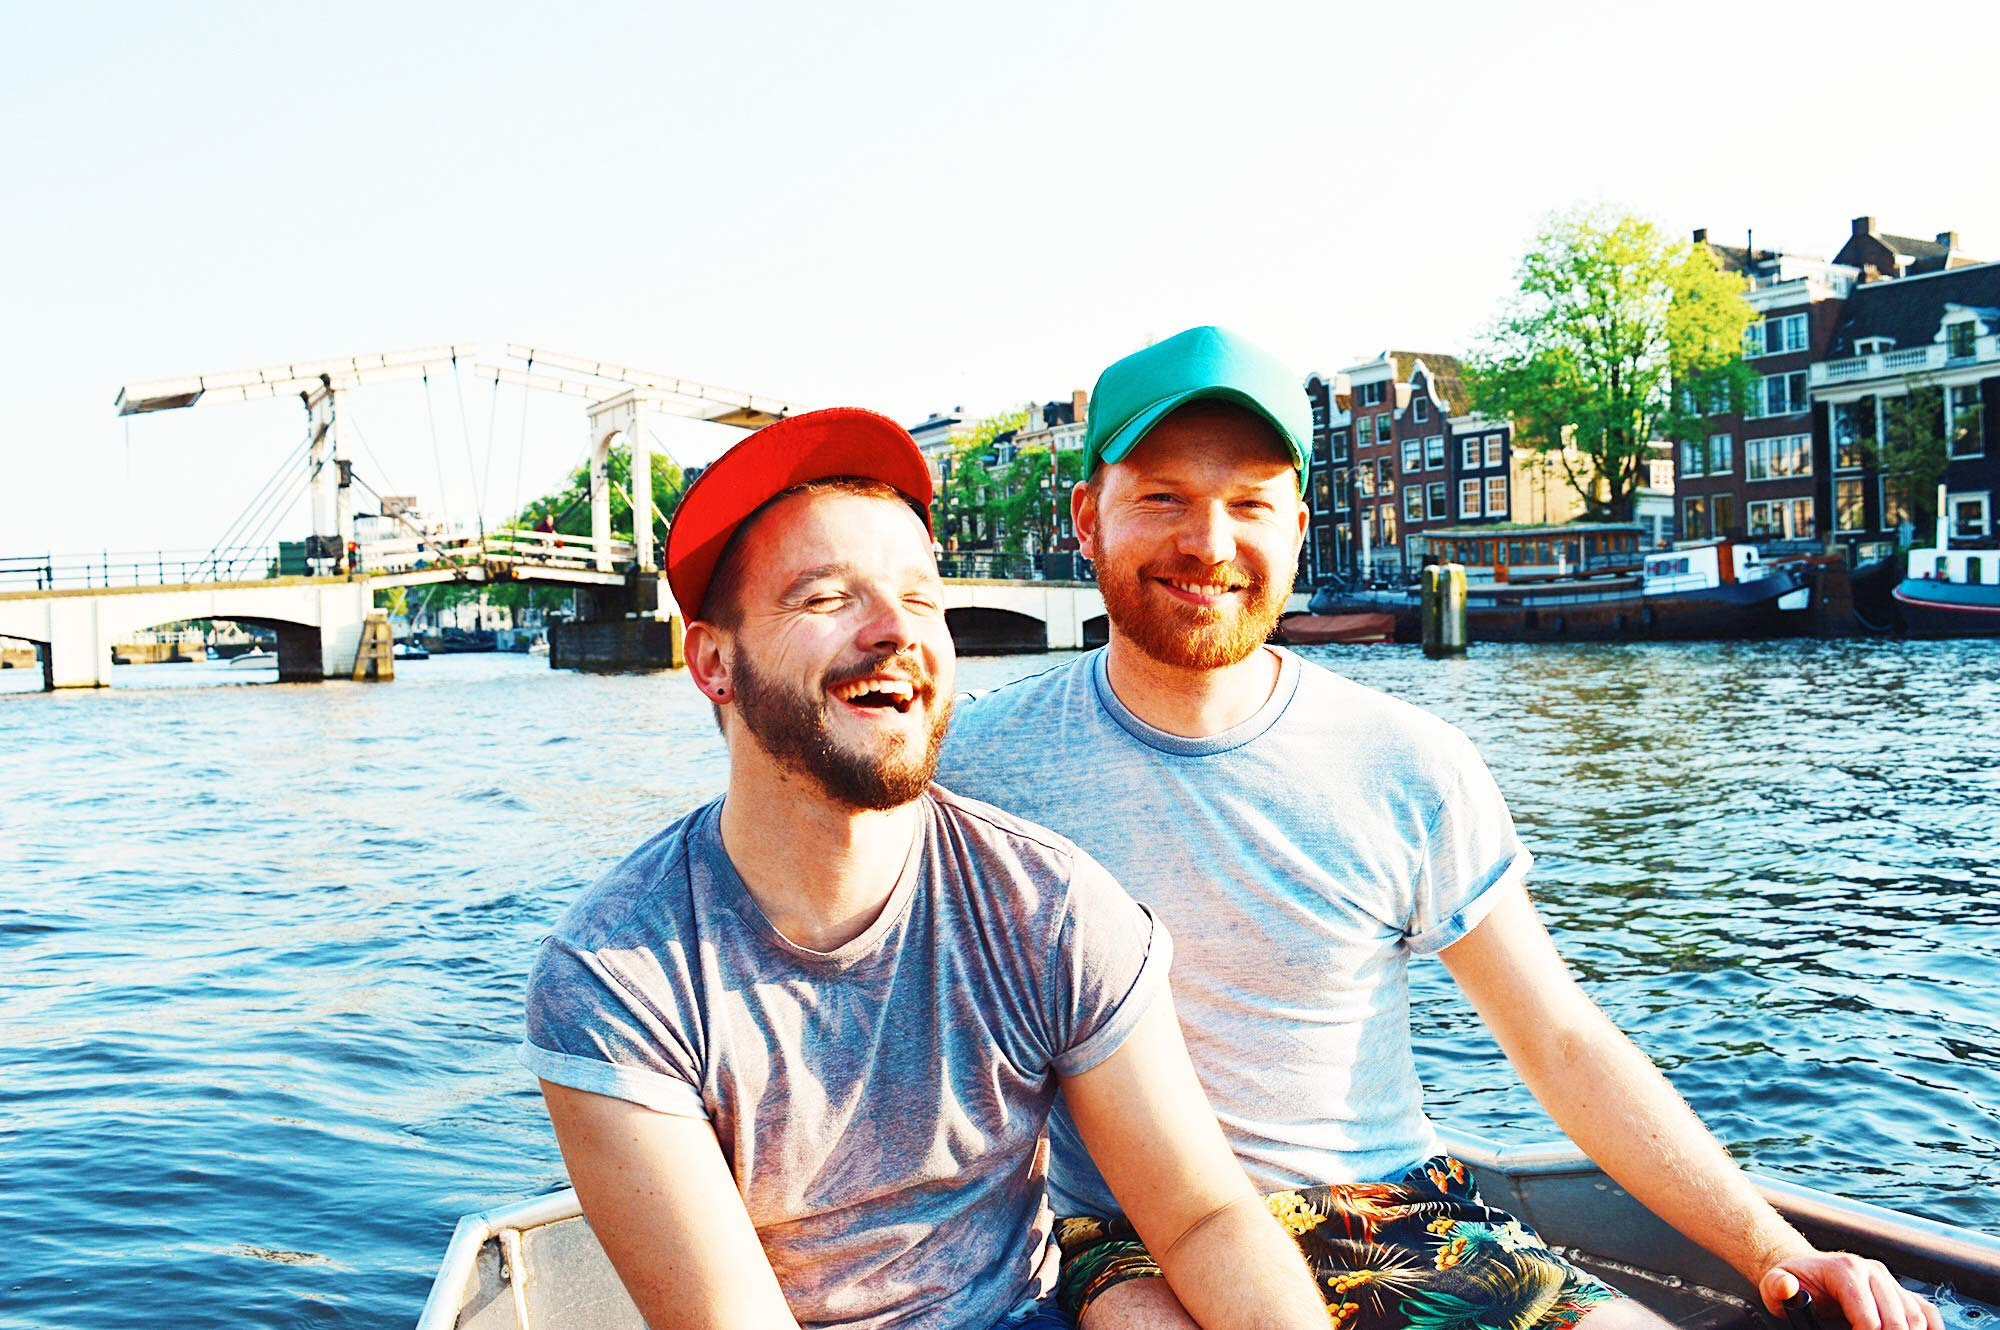 gay and bi guys in Netherlands